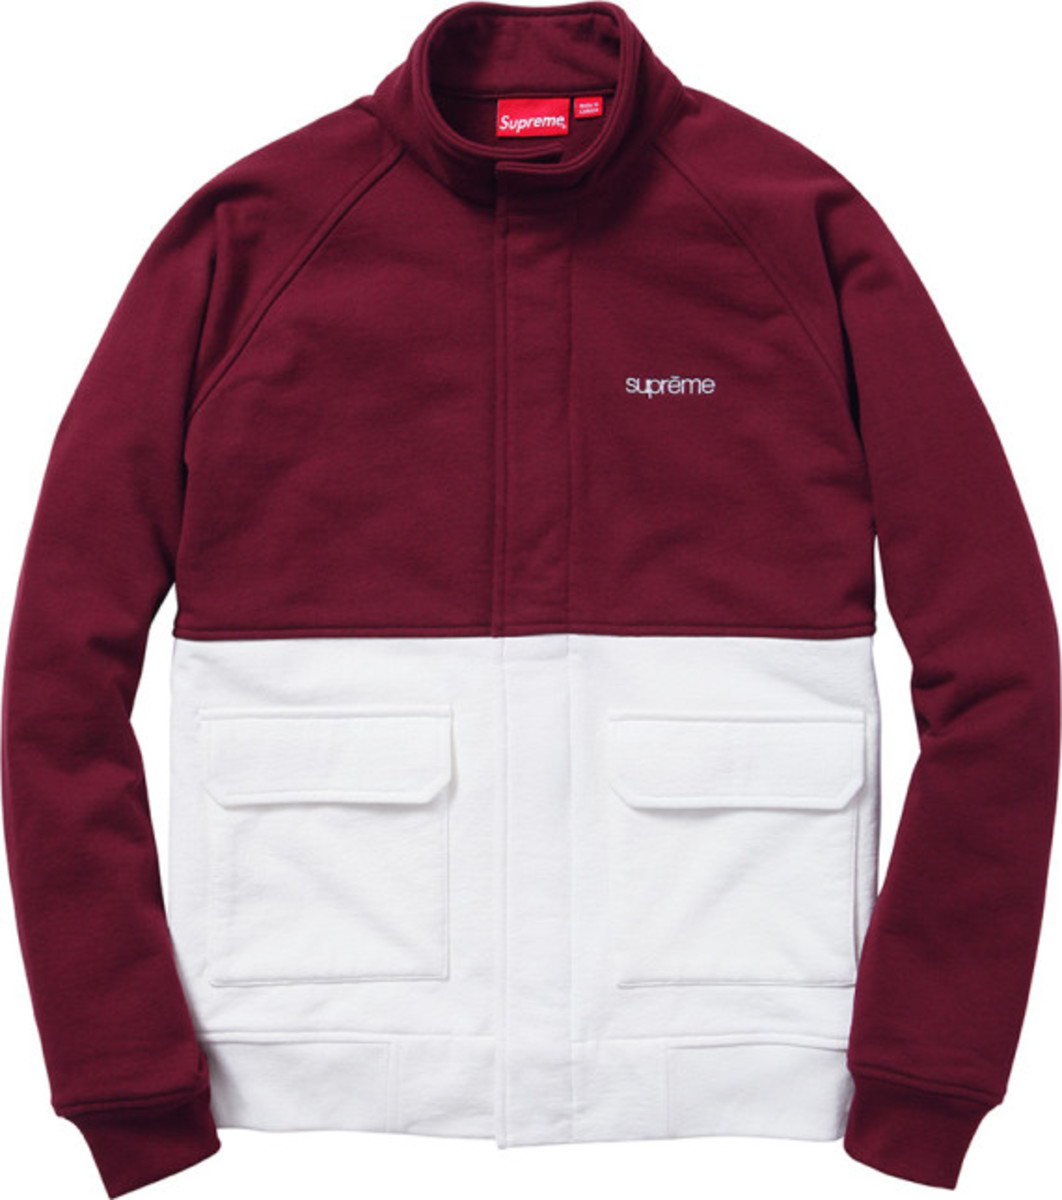 supreme-fall-winter-2014-apparel-collection-51